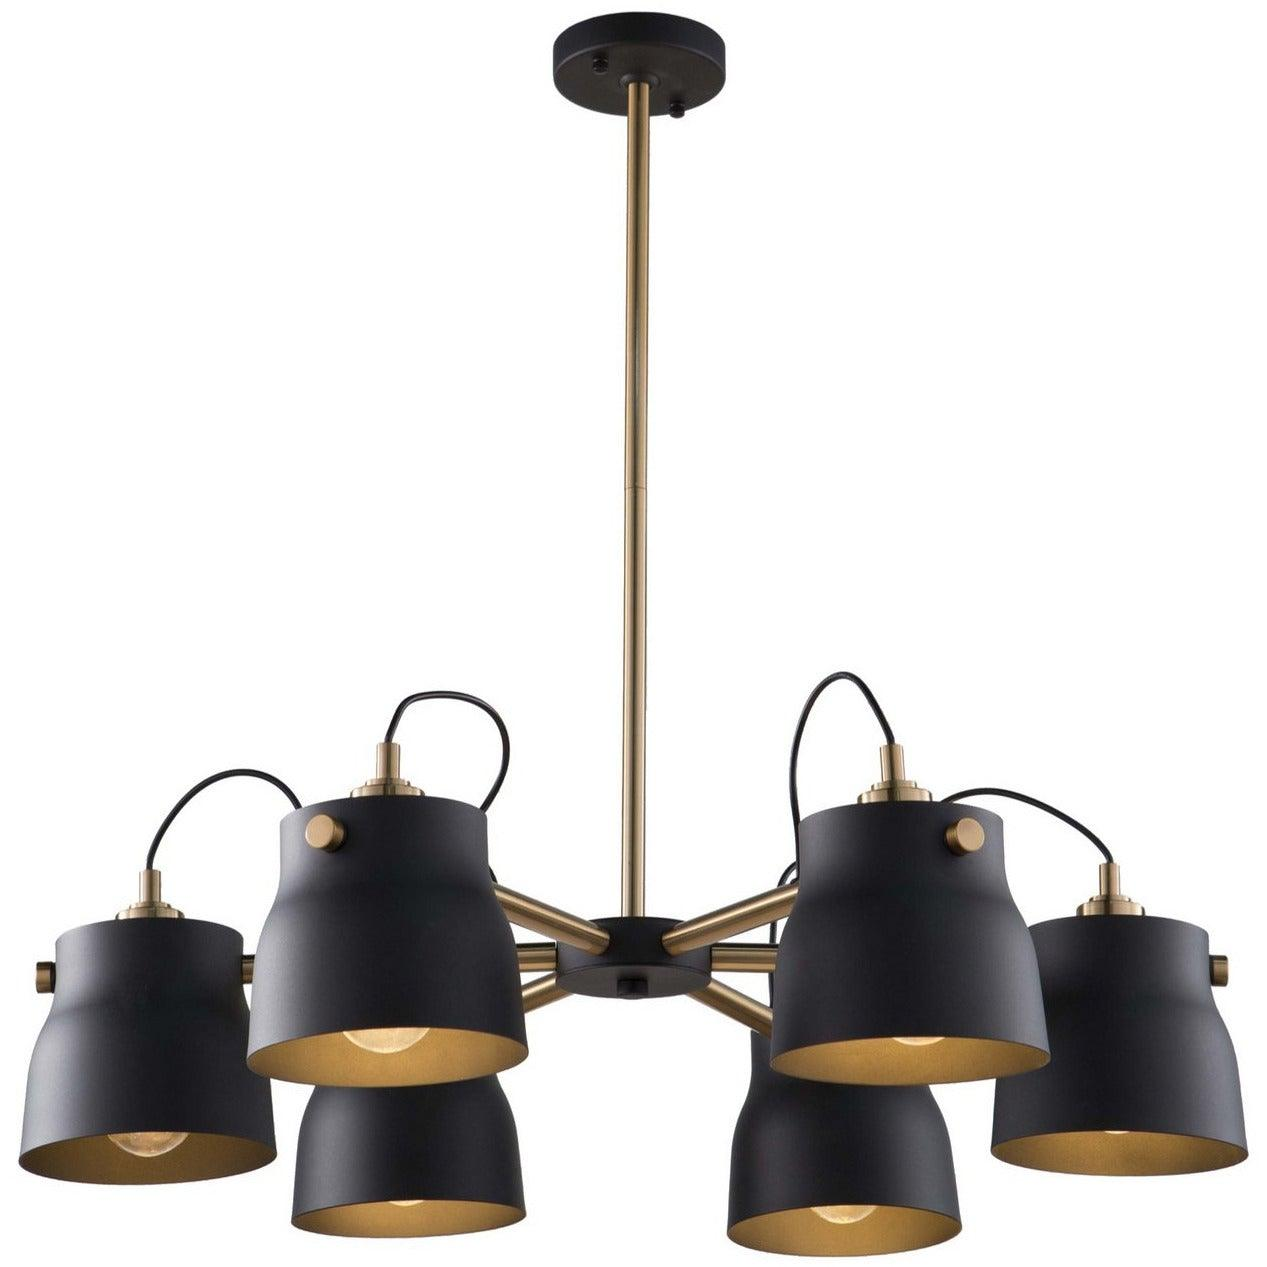 Artcraft Lighting - AC11366VB - Six Light Chandelier - Euro Industrial - Matte Black & Harvest Brass